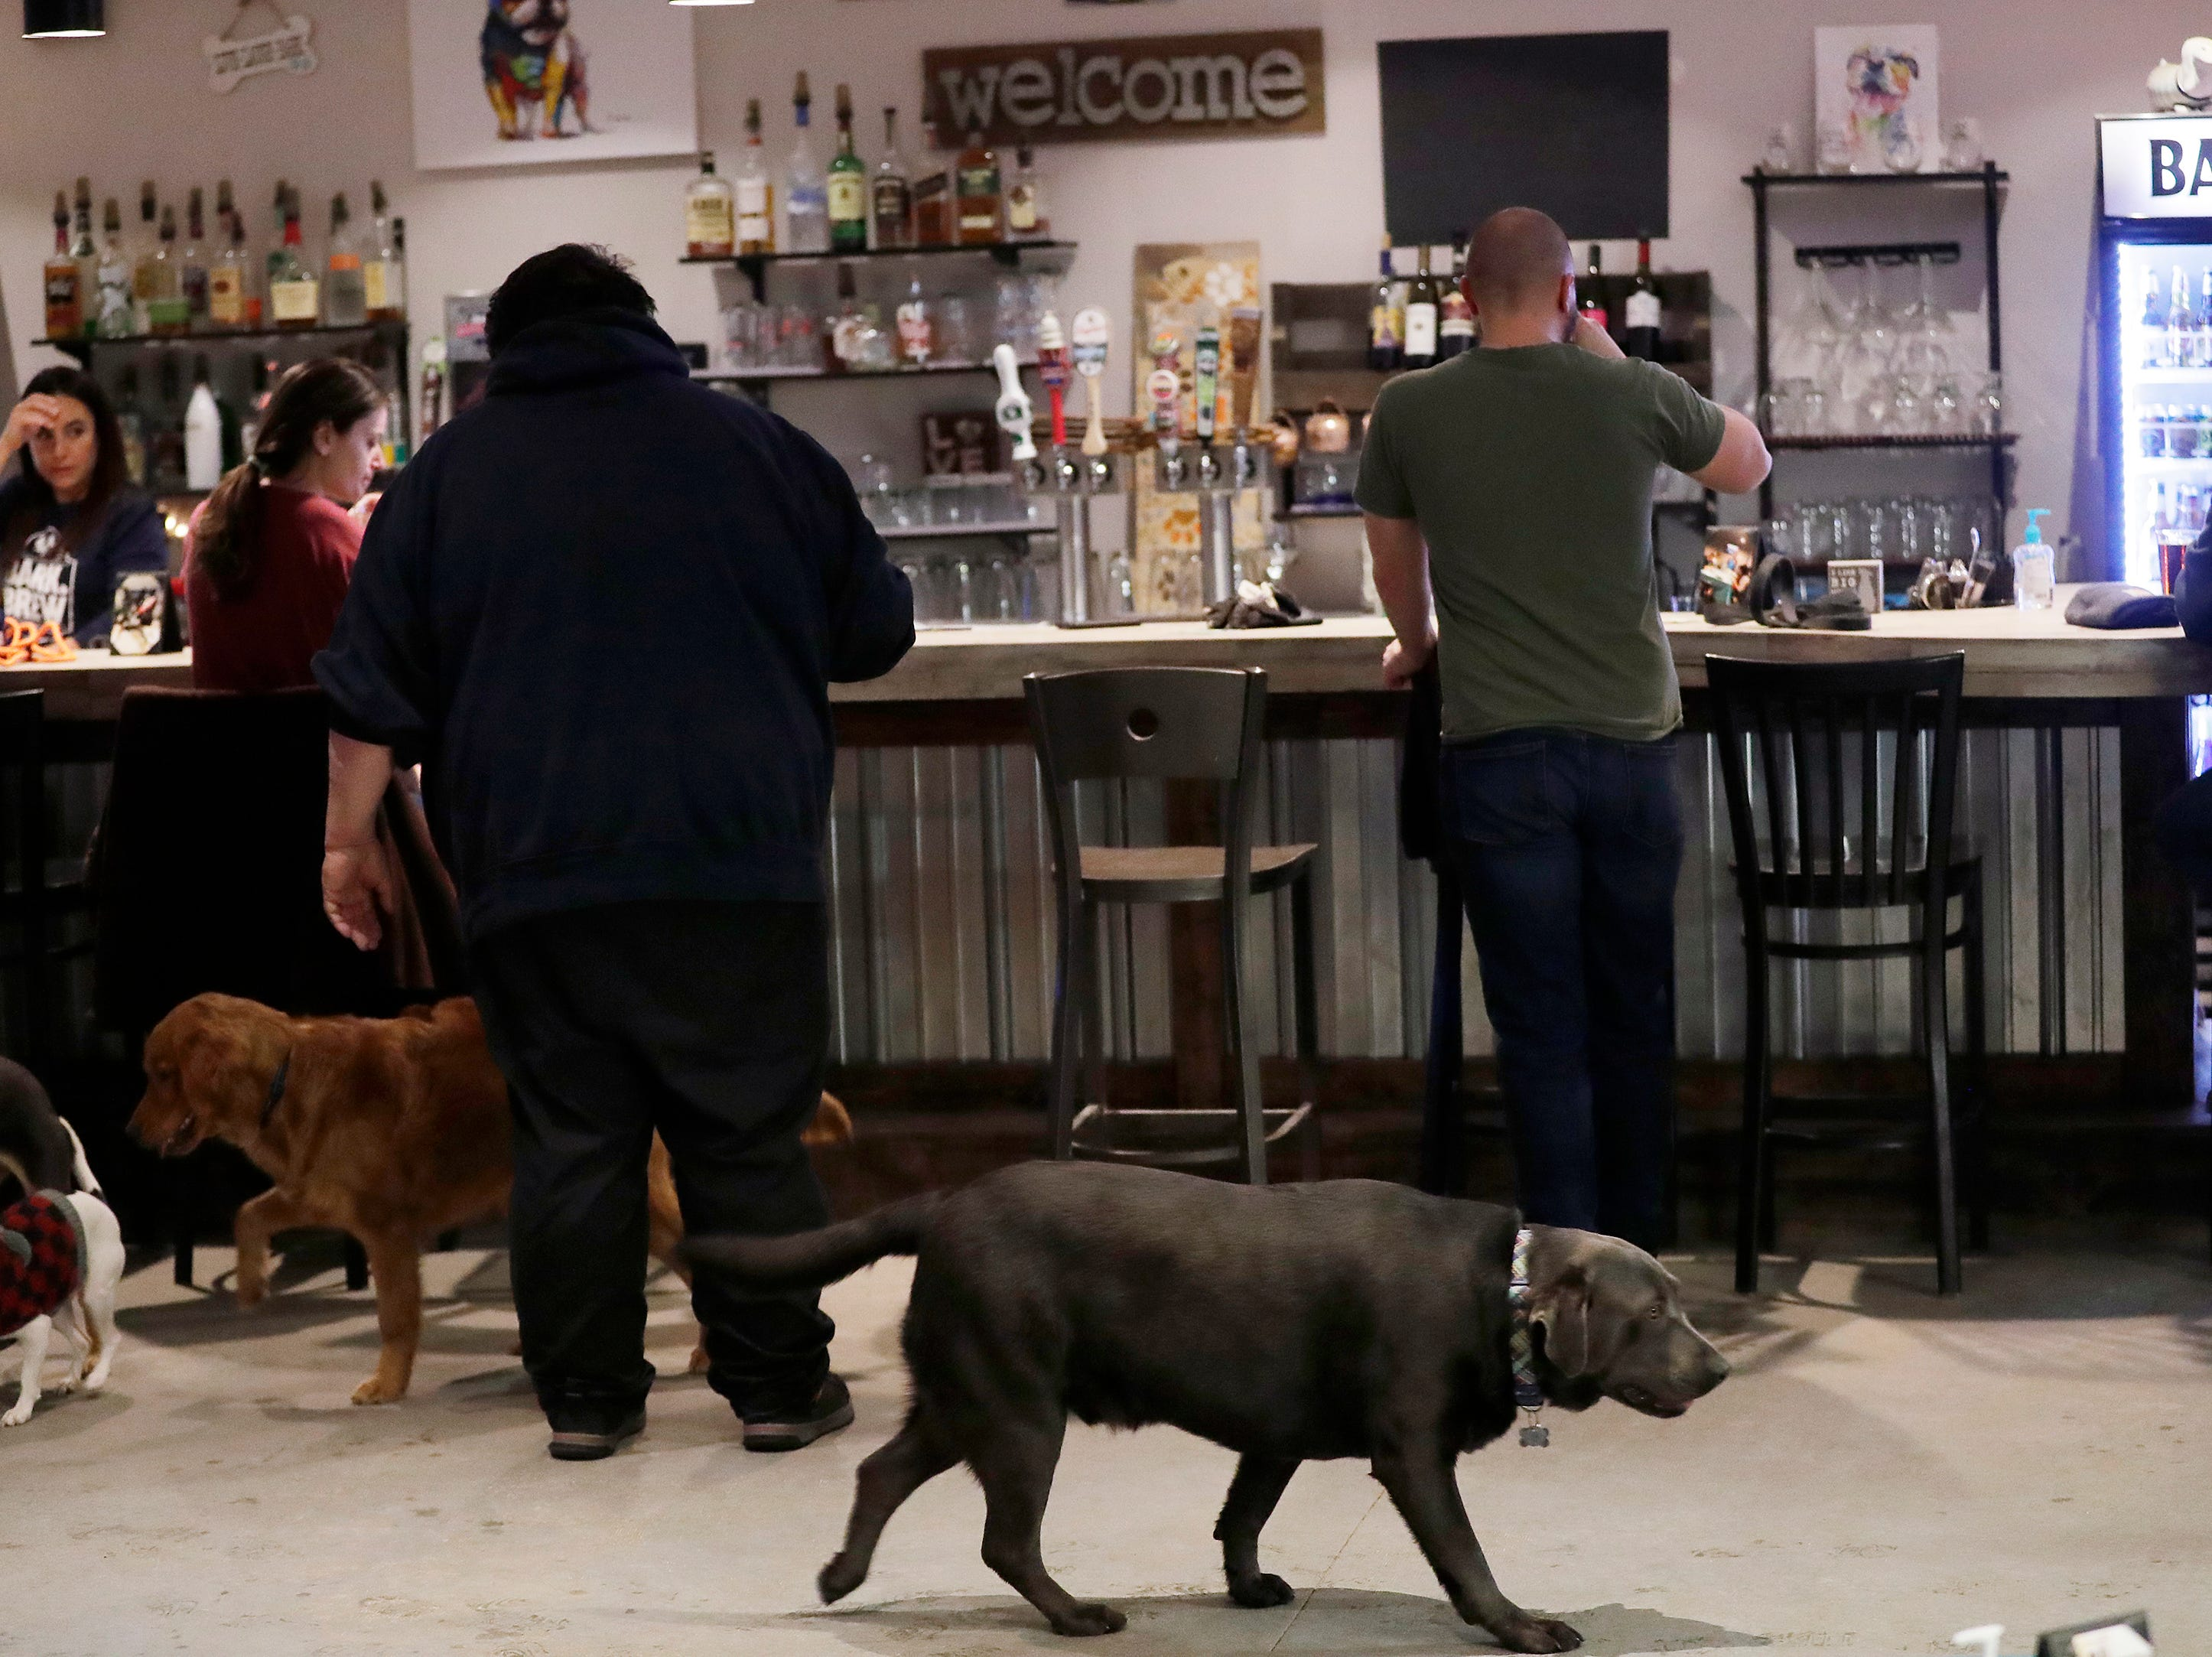 Dogs play by the bar at Bark and Brew on Tuesday, Jan. 29, 2019, in Suamico, Wis.